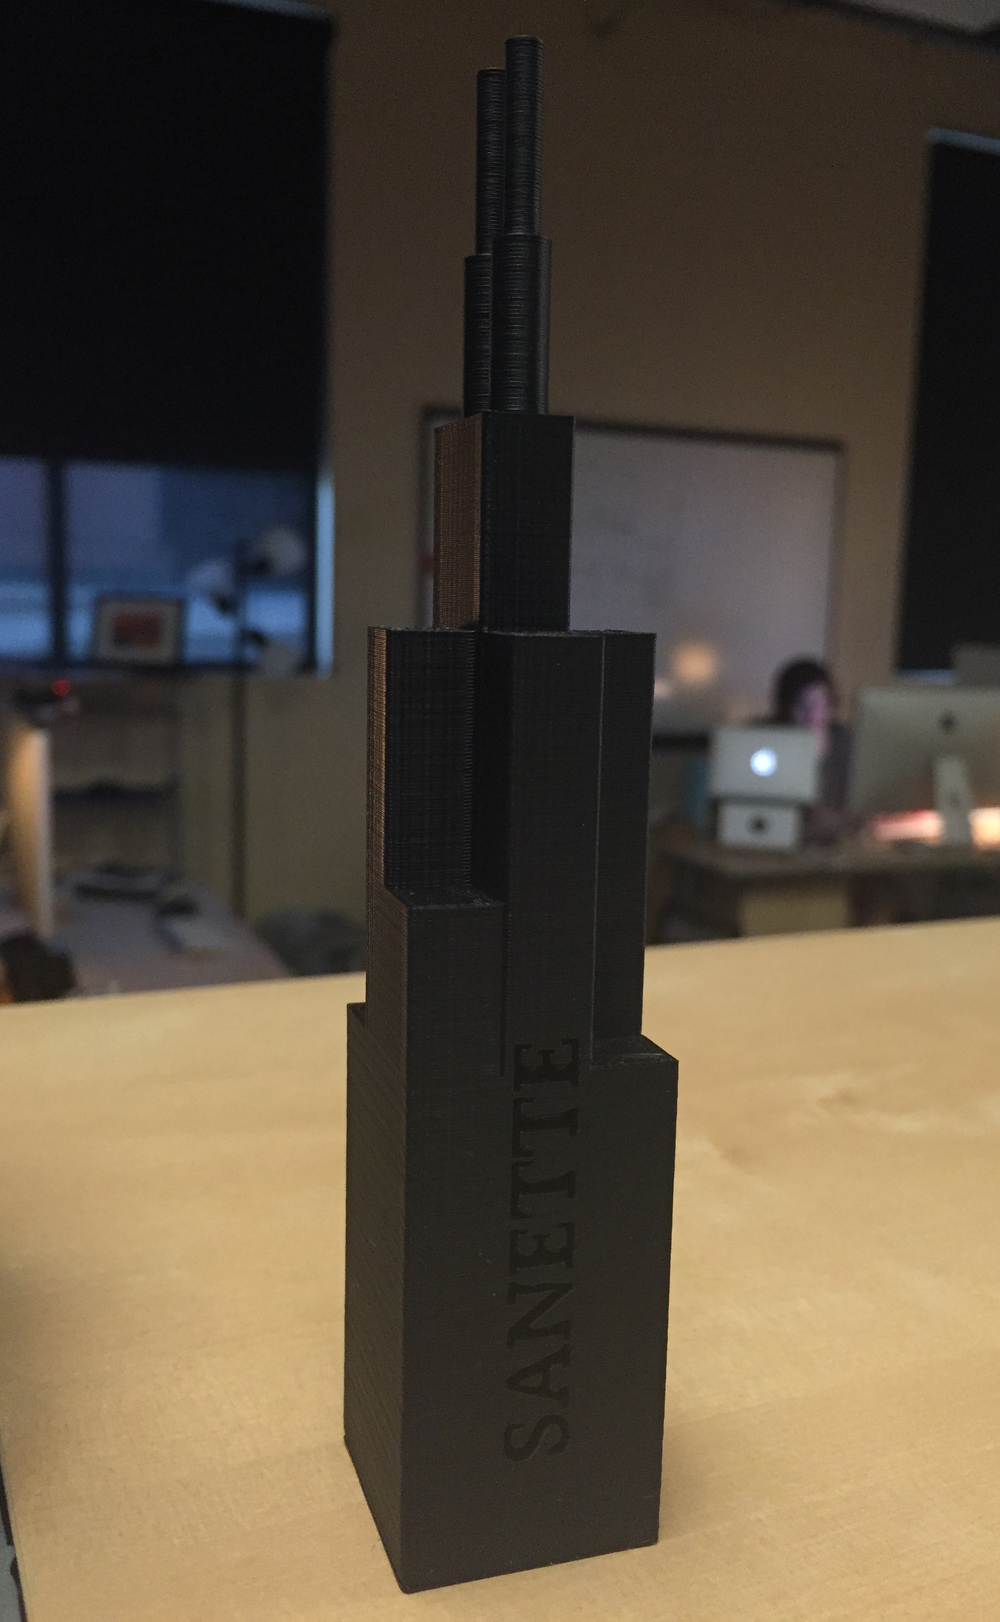 My 3D-printed model of the Sears Tower.